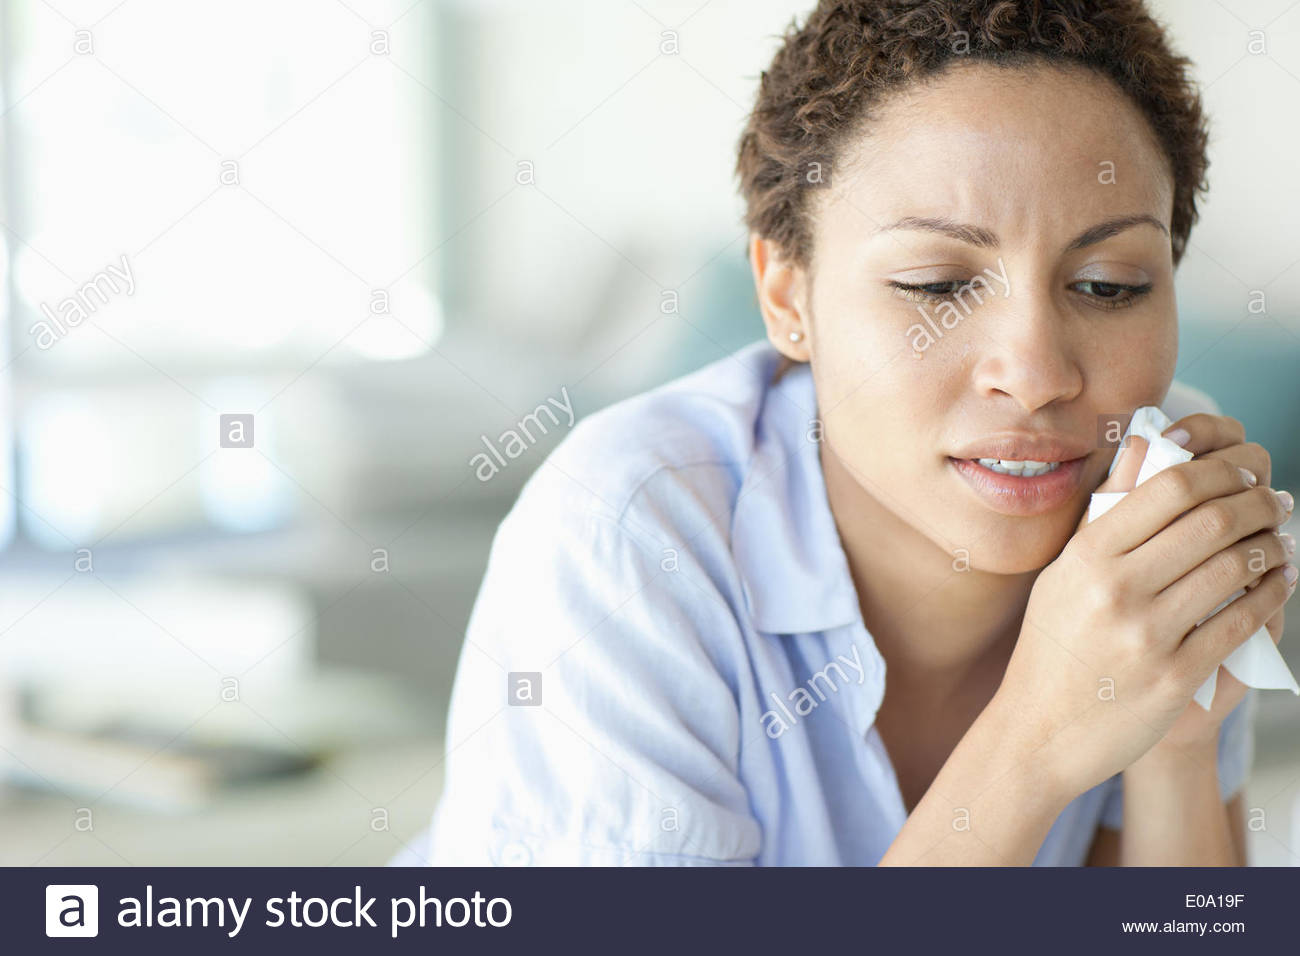 Crying woman holding tissue Photo Stock